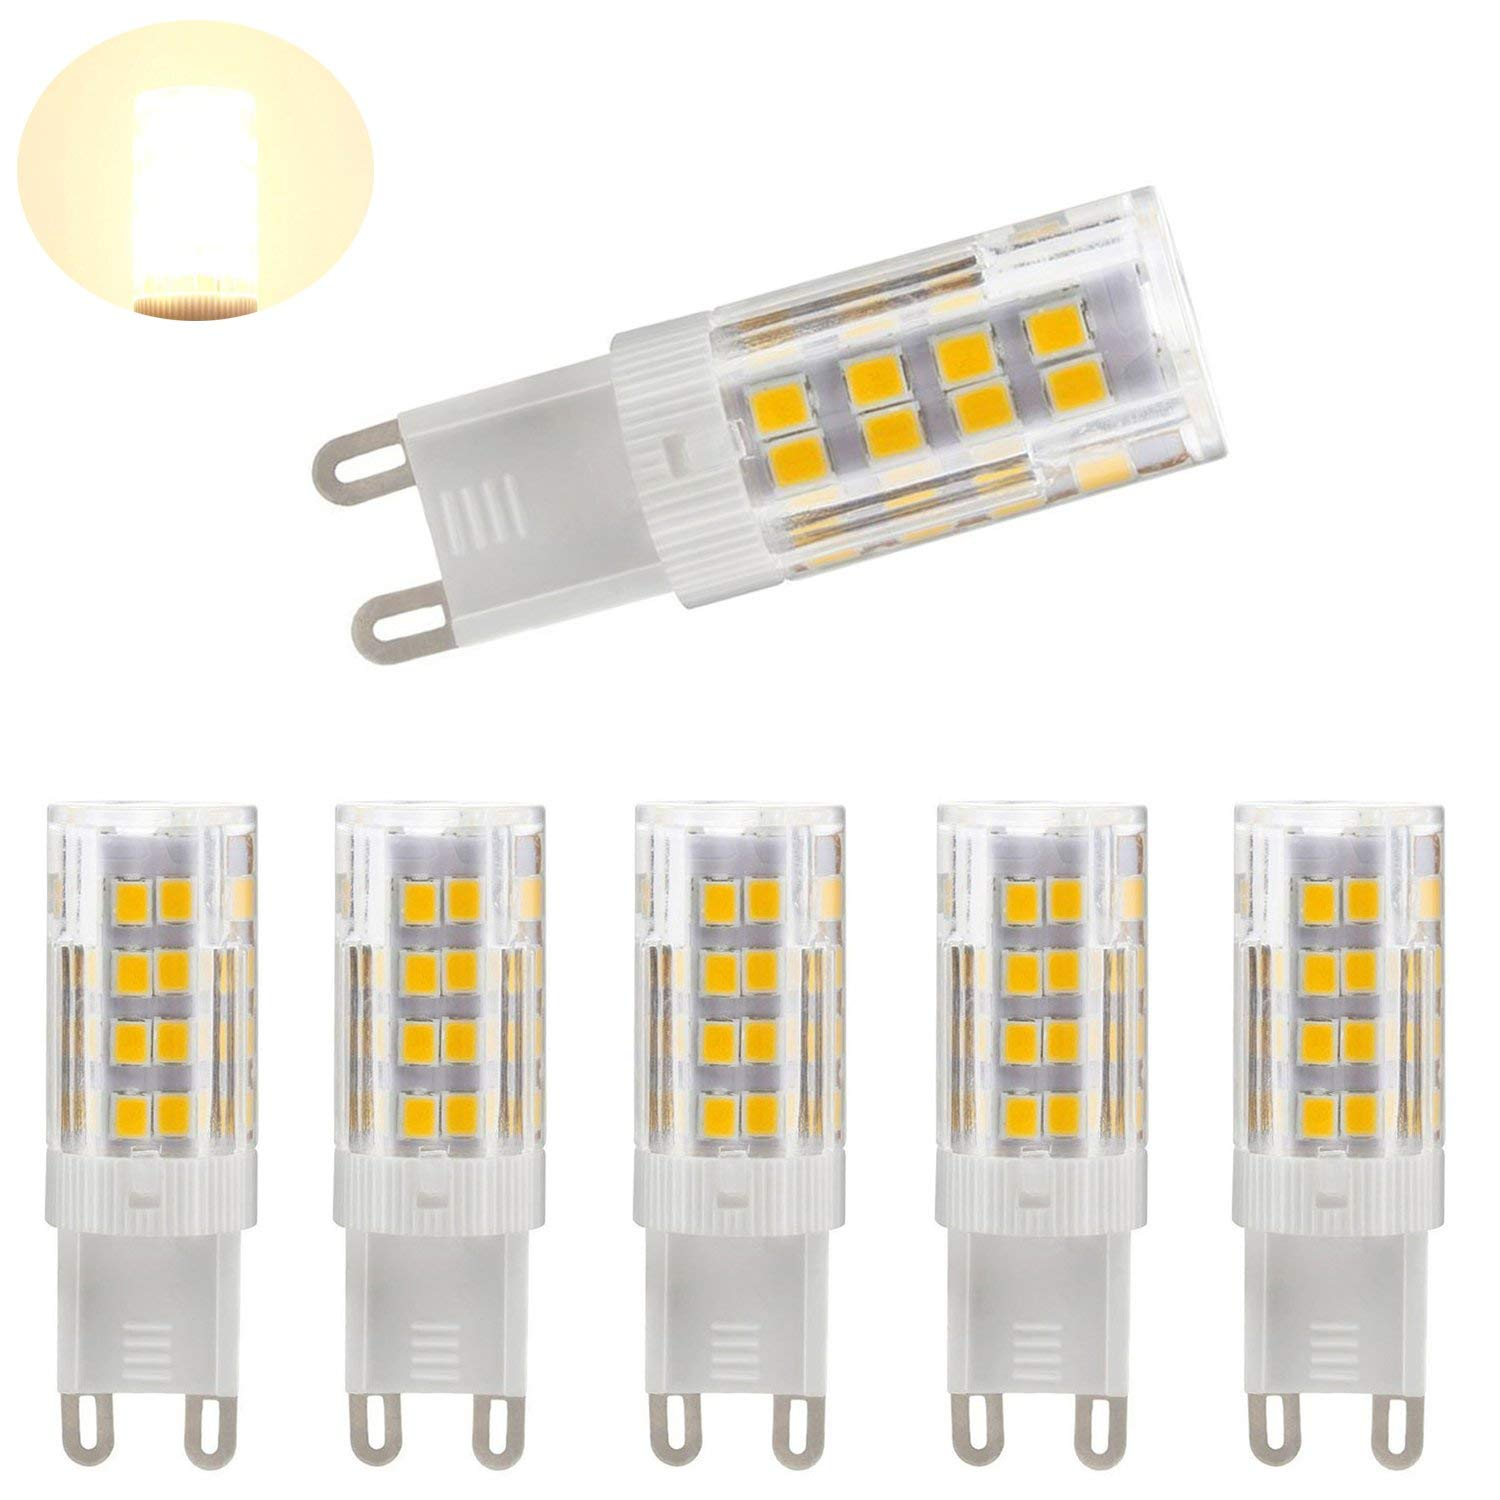 G9 LED Dimmable Light, Bi-pin Base, Warm White 3000k,4W ( 40W Halogen Equivalent ) T4 JD Type LED G9 Bulb 400LM, AC100V-130V (5 pack)